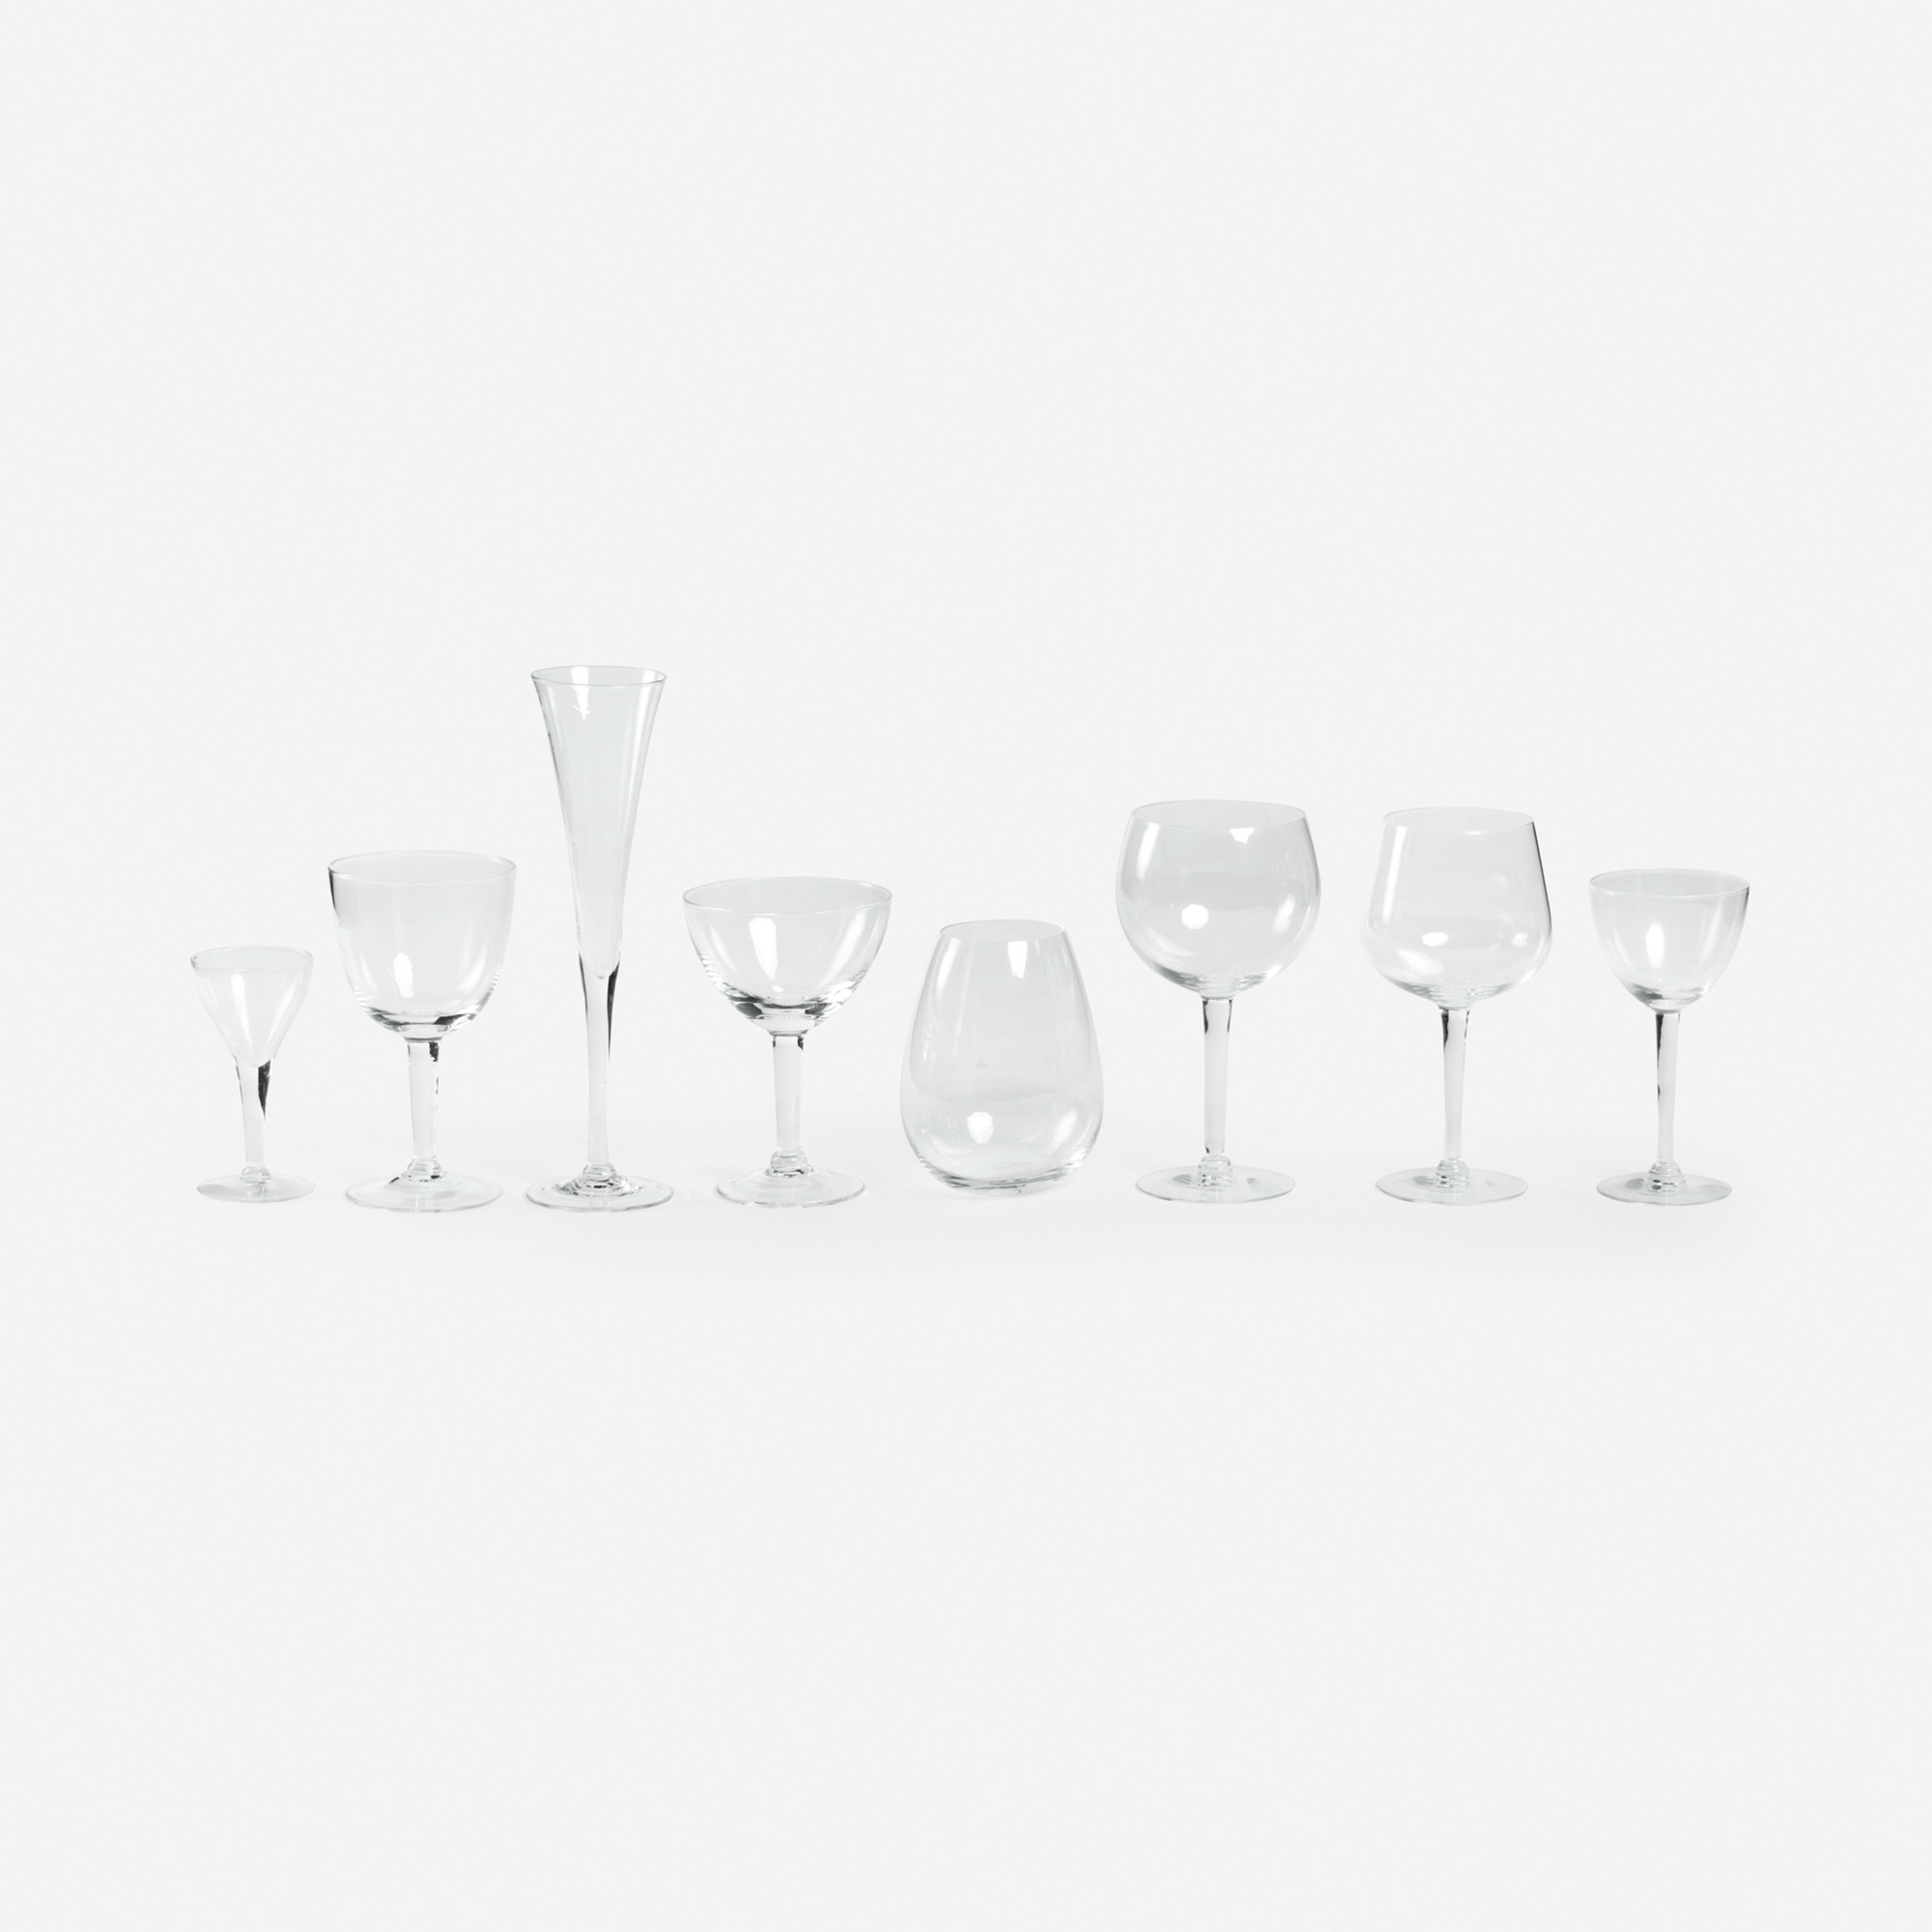 616: Garth and Ada Louise Huxtable / Stemware Collection from The Four Seasons, service for two (1 of 1)